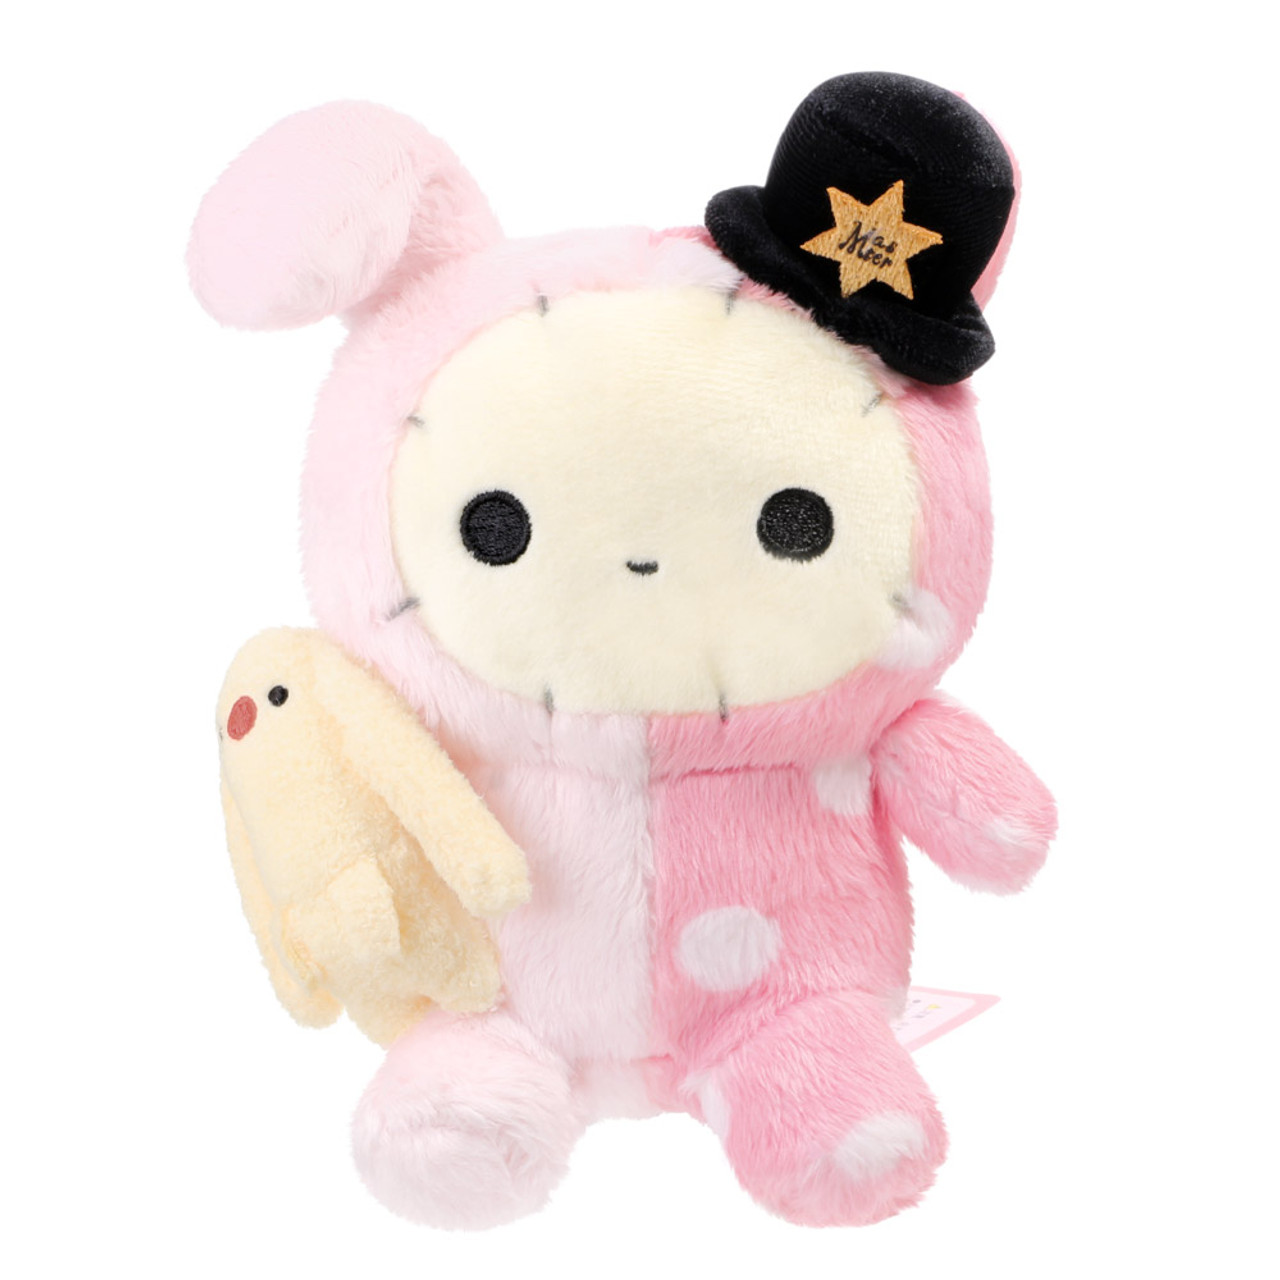 Sentimental Circus Plush Doll - Shappo & Toto ( Front View )